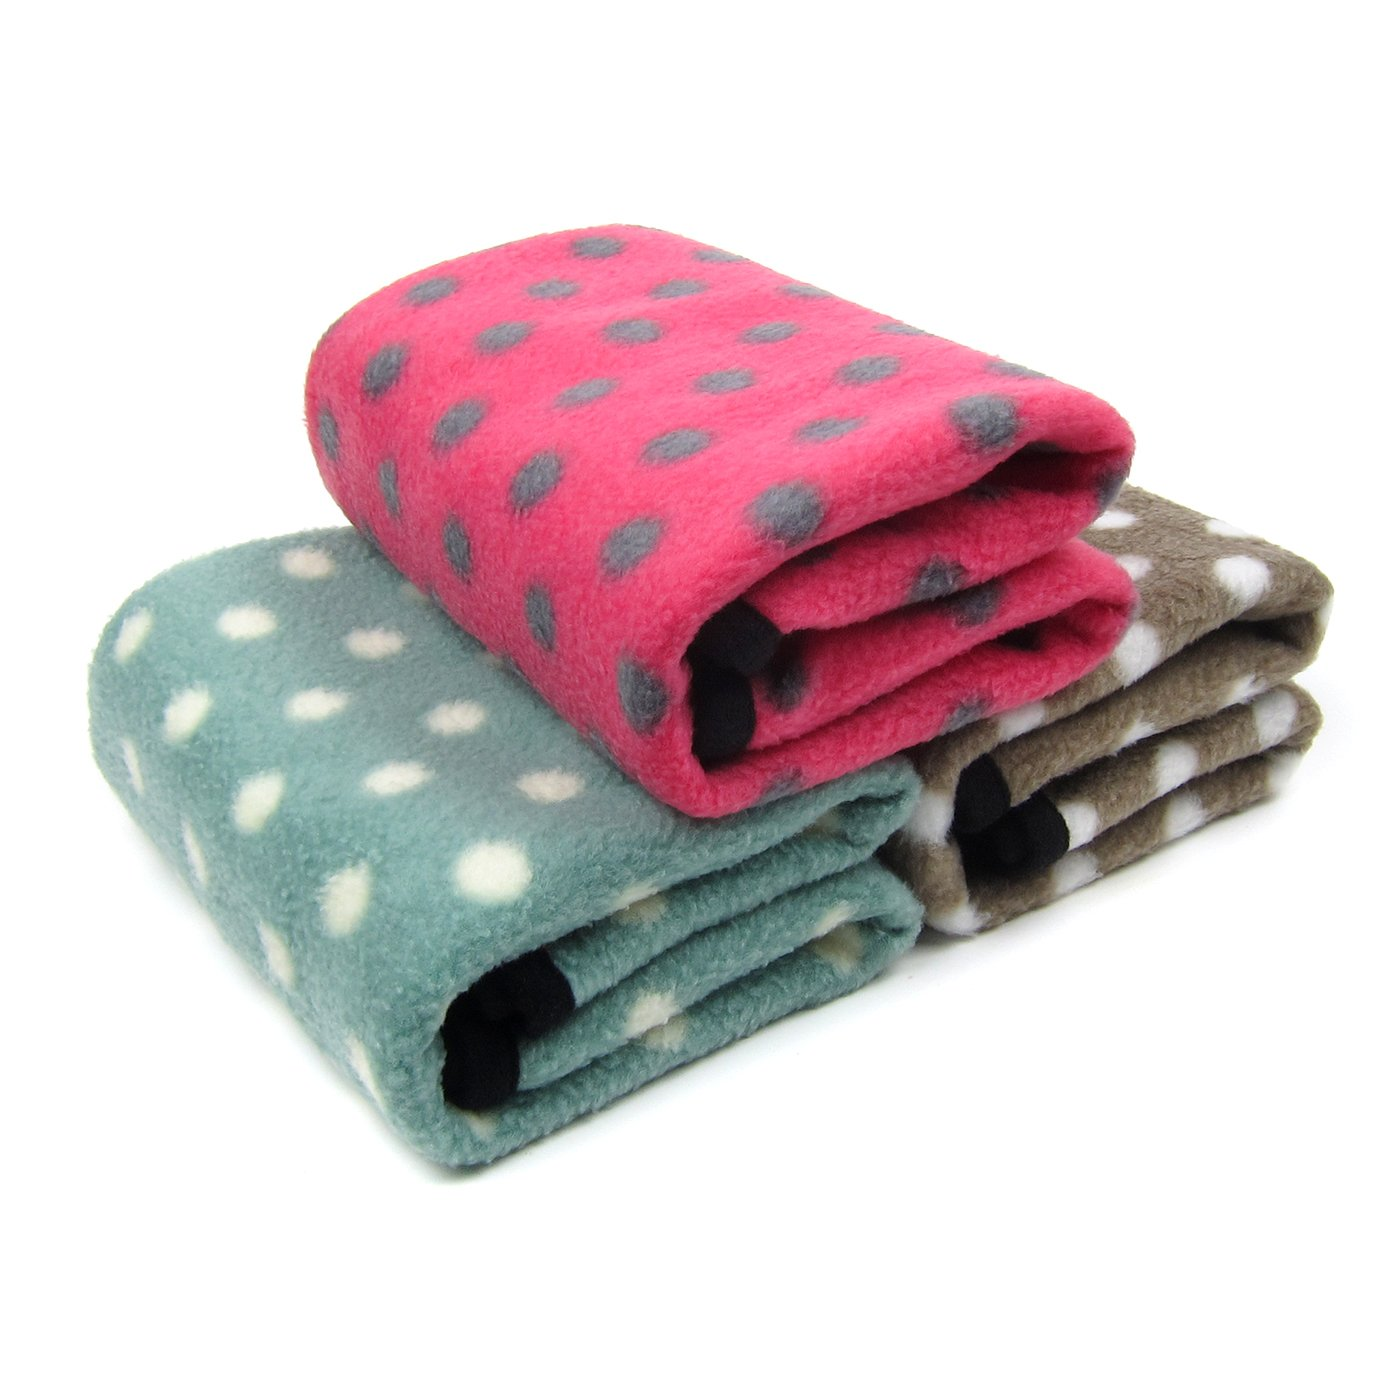 Alfie Pet by Petoga Couture - Quarry Fleece 3-Piece Set Blanket for Dogs and Cats - Size: Medium